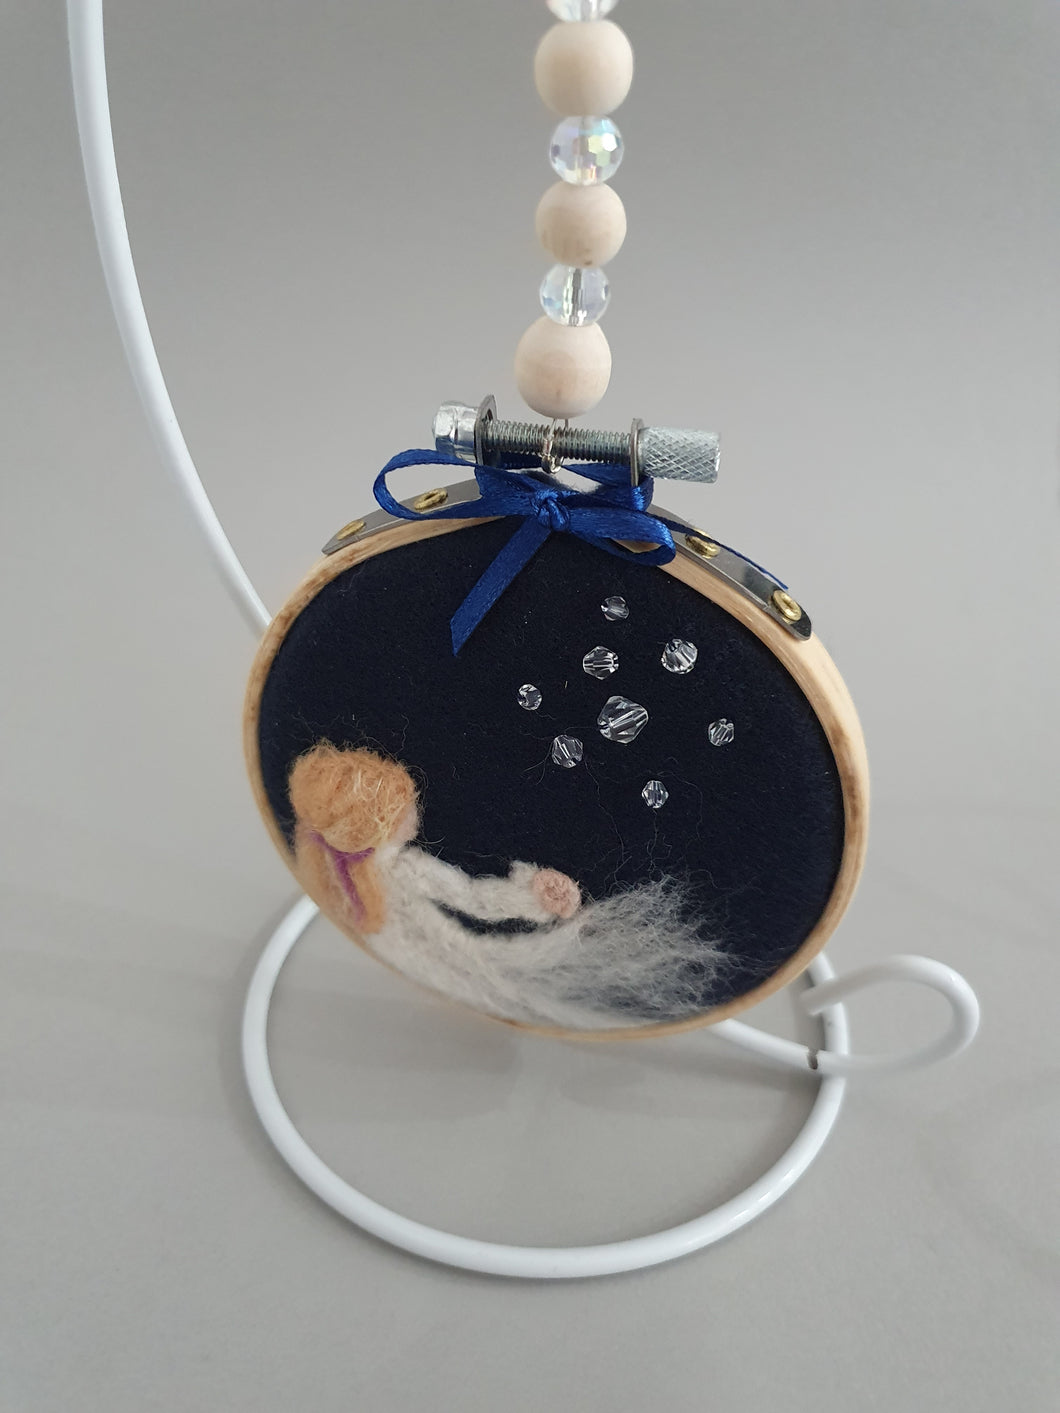 Needle Felted Hanging Ring - Bubbles in the Wind Design